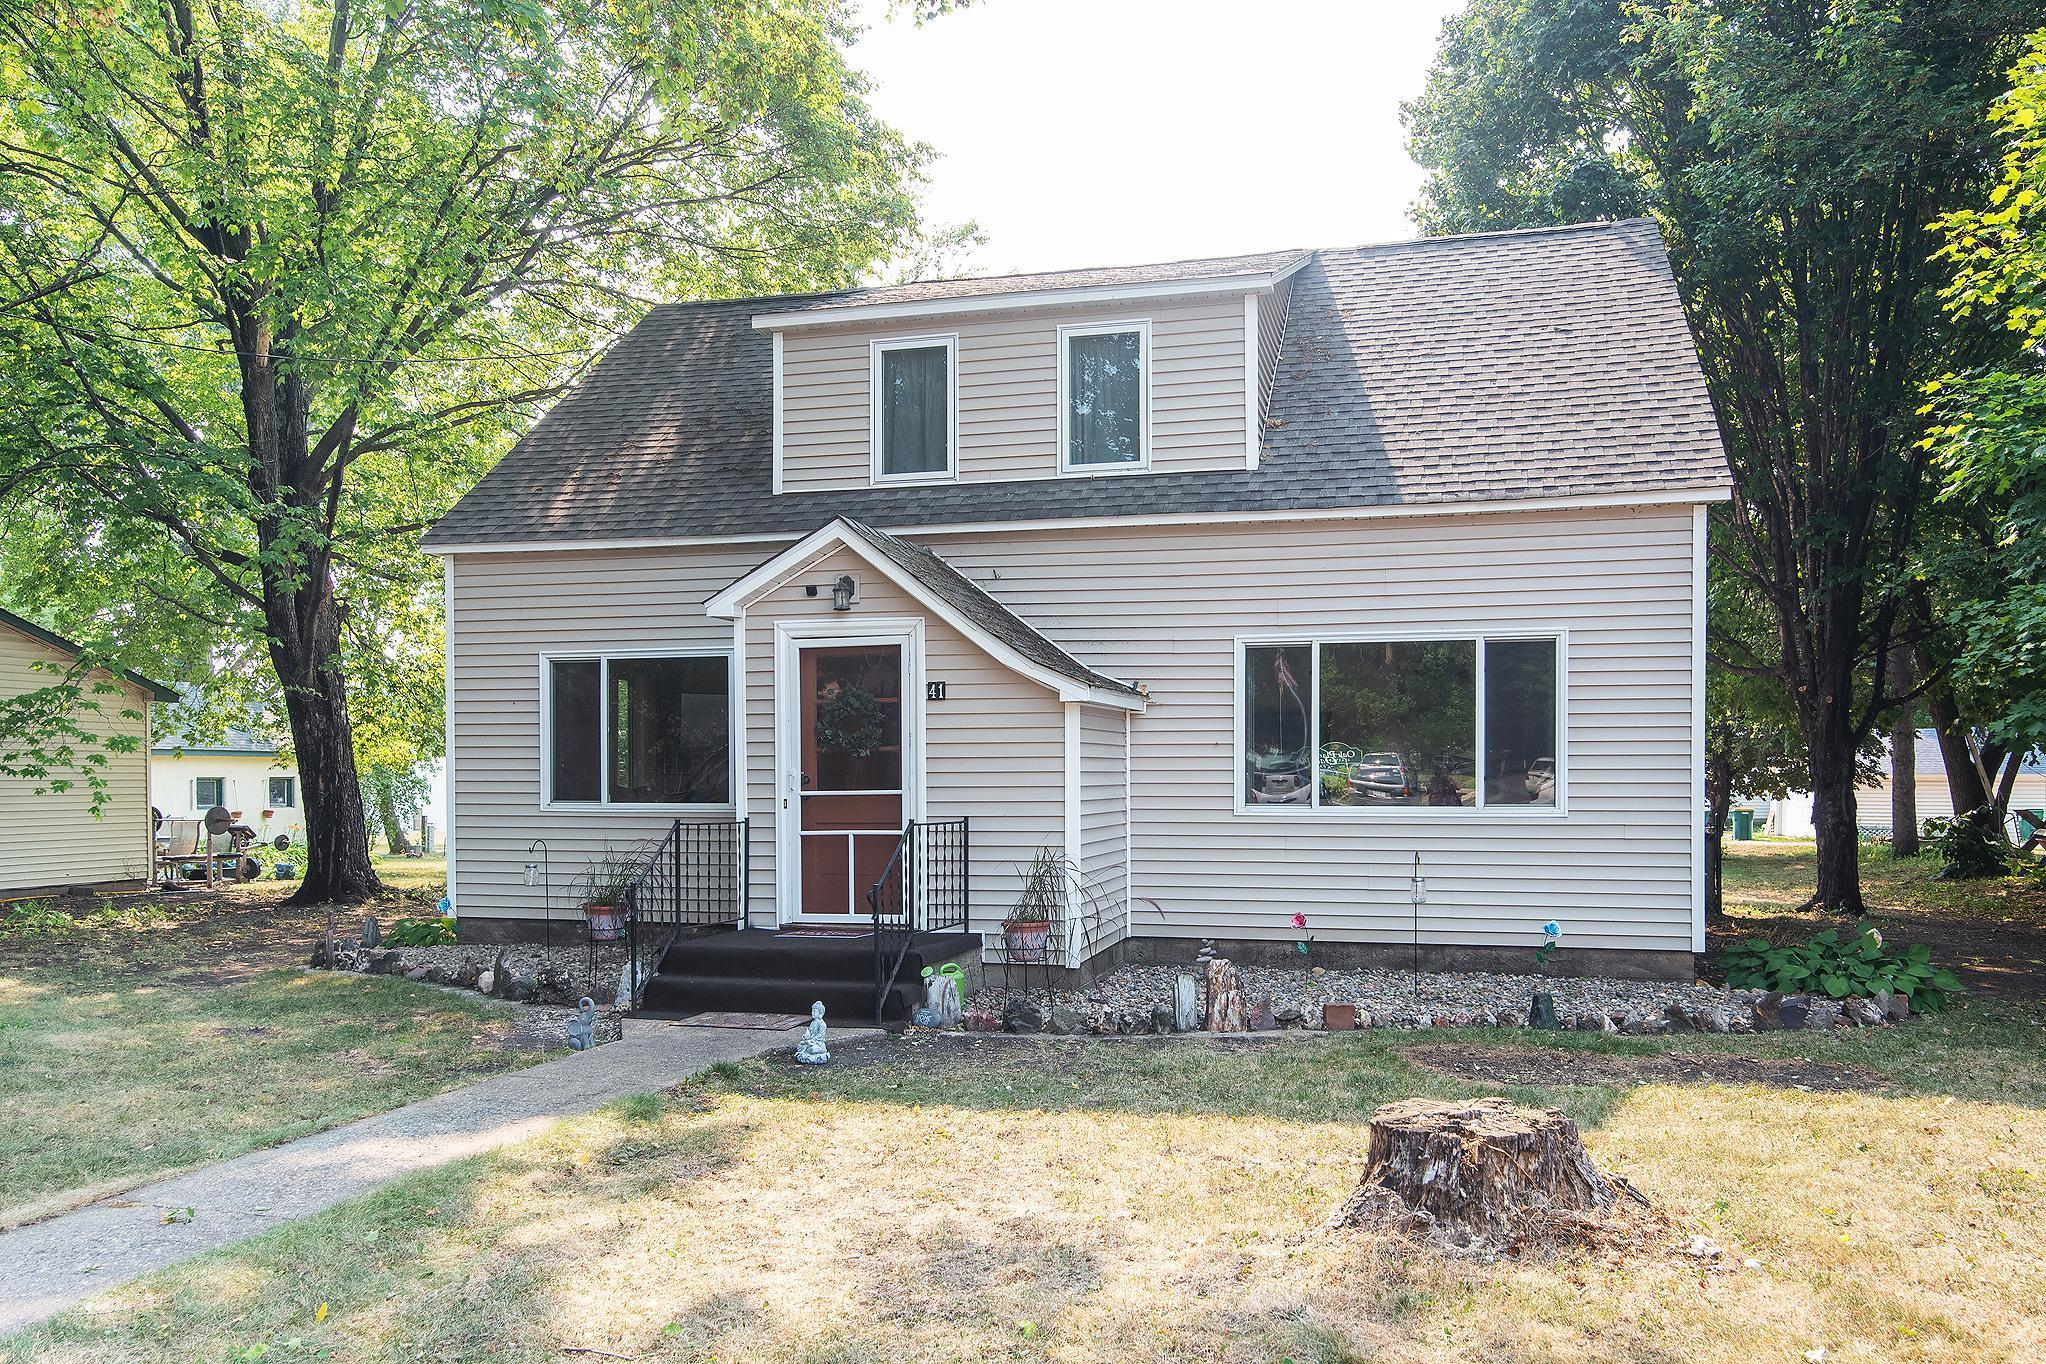 This 1948 One & 1/2 story home is located on a .26 acre city lot with fenced in backyard.  The home features 1970 FSF, 4 bedrooms, 3 bathrooms, detached 2 car garage, office, (future master bedrooms w/walk-in closet, just missing egress window), main floor laundry, hardwood floors, main floor bedroom, 3 bedrooms upstairs, large living room on main level, lower level family room, and large utility room and storage room.  Updates include newer roof, siding, windows, furnace, water heater, water softener and insulation in 2013, landscaped yard, new carpeting in hallway and whole upstairs in 2017, dishwasher and dryer in 2016.  Close to schools, shopping and access to Hwy 15 & 55.